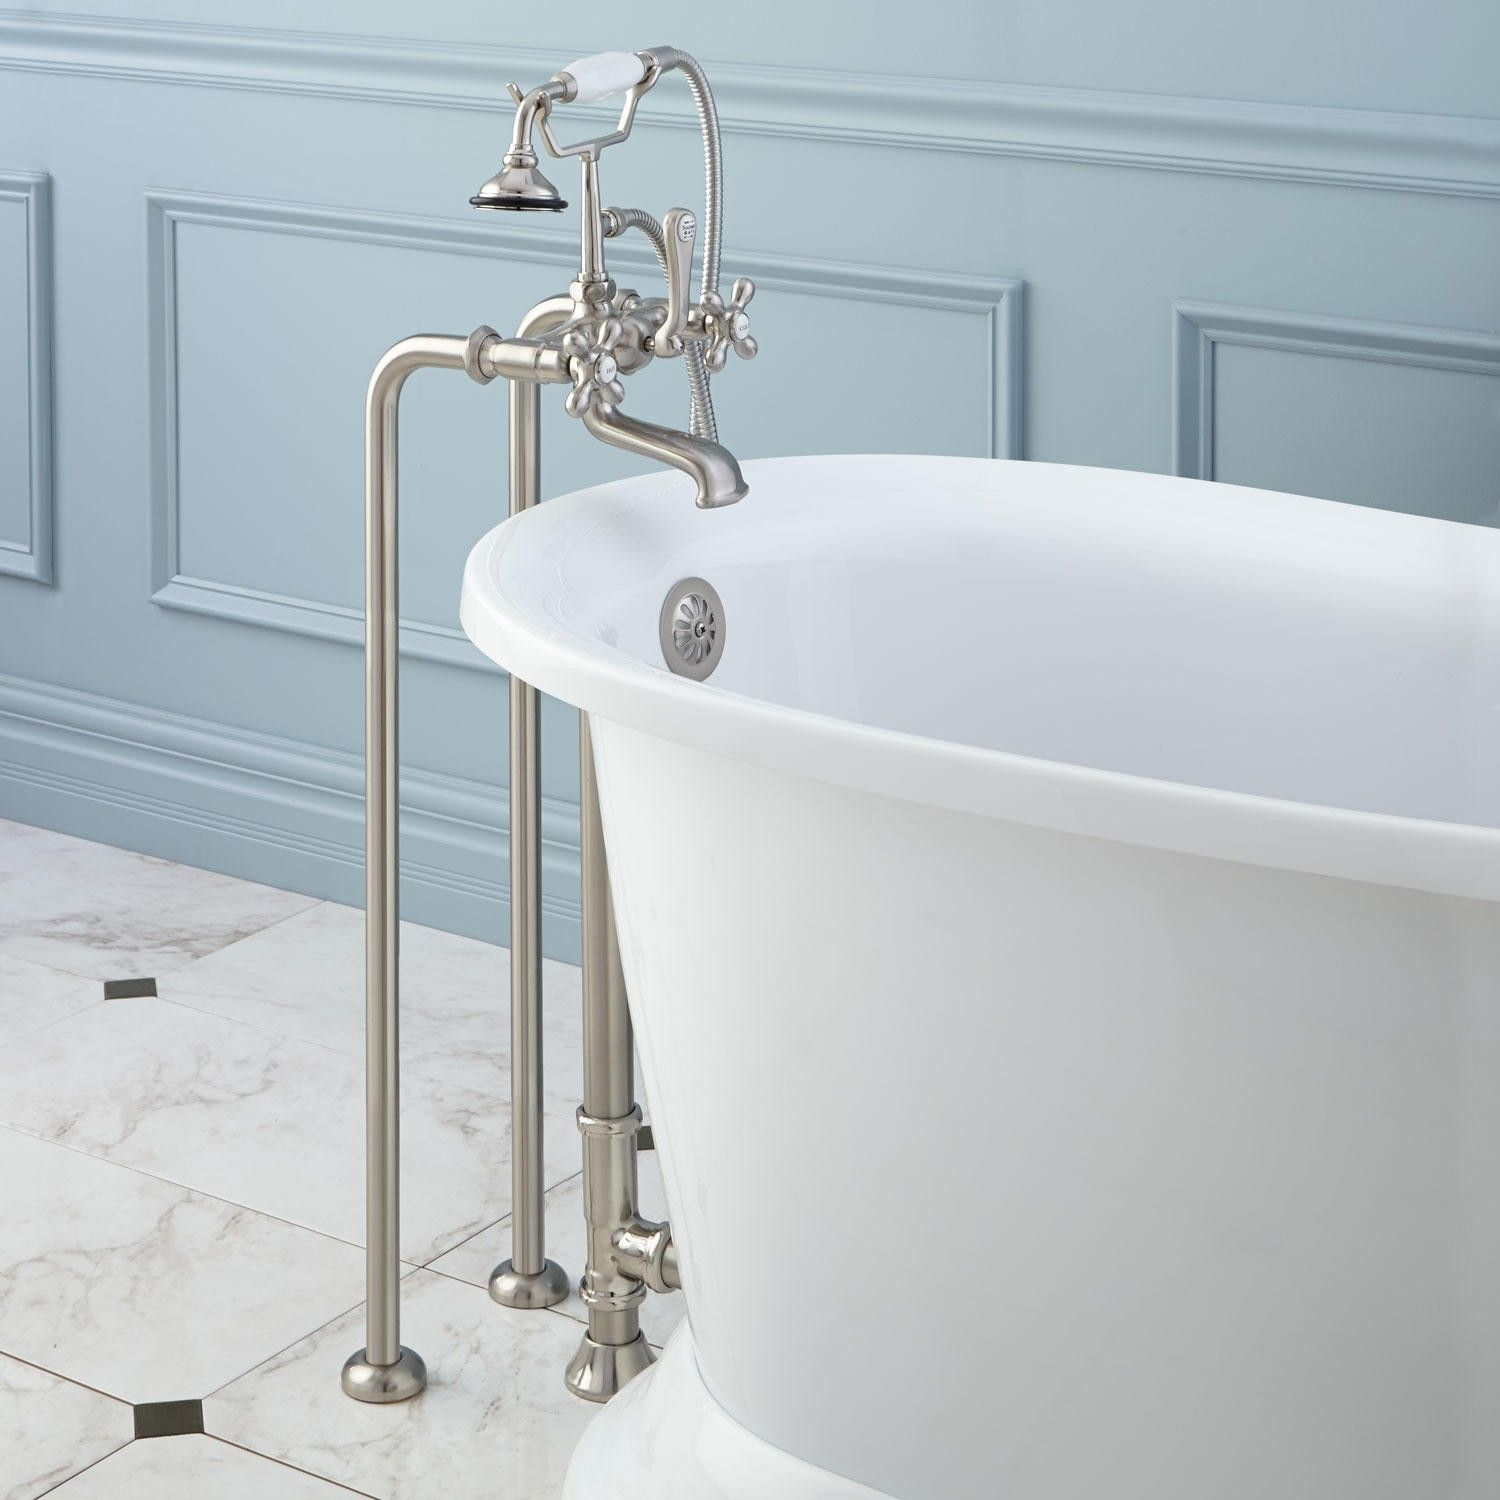 Freestanding+English+Telephone+Tub+Faucet,+Supplies+and+Drain+-+ ...